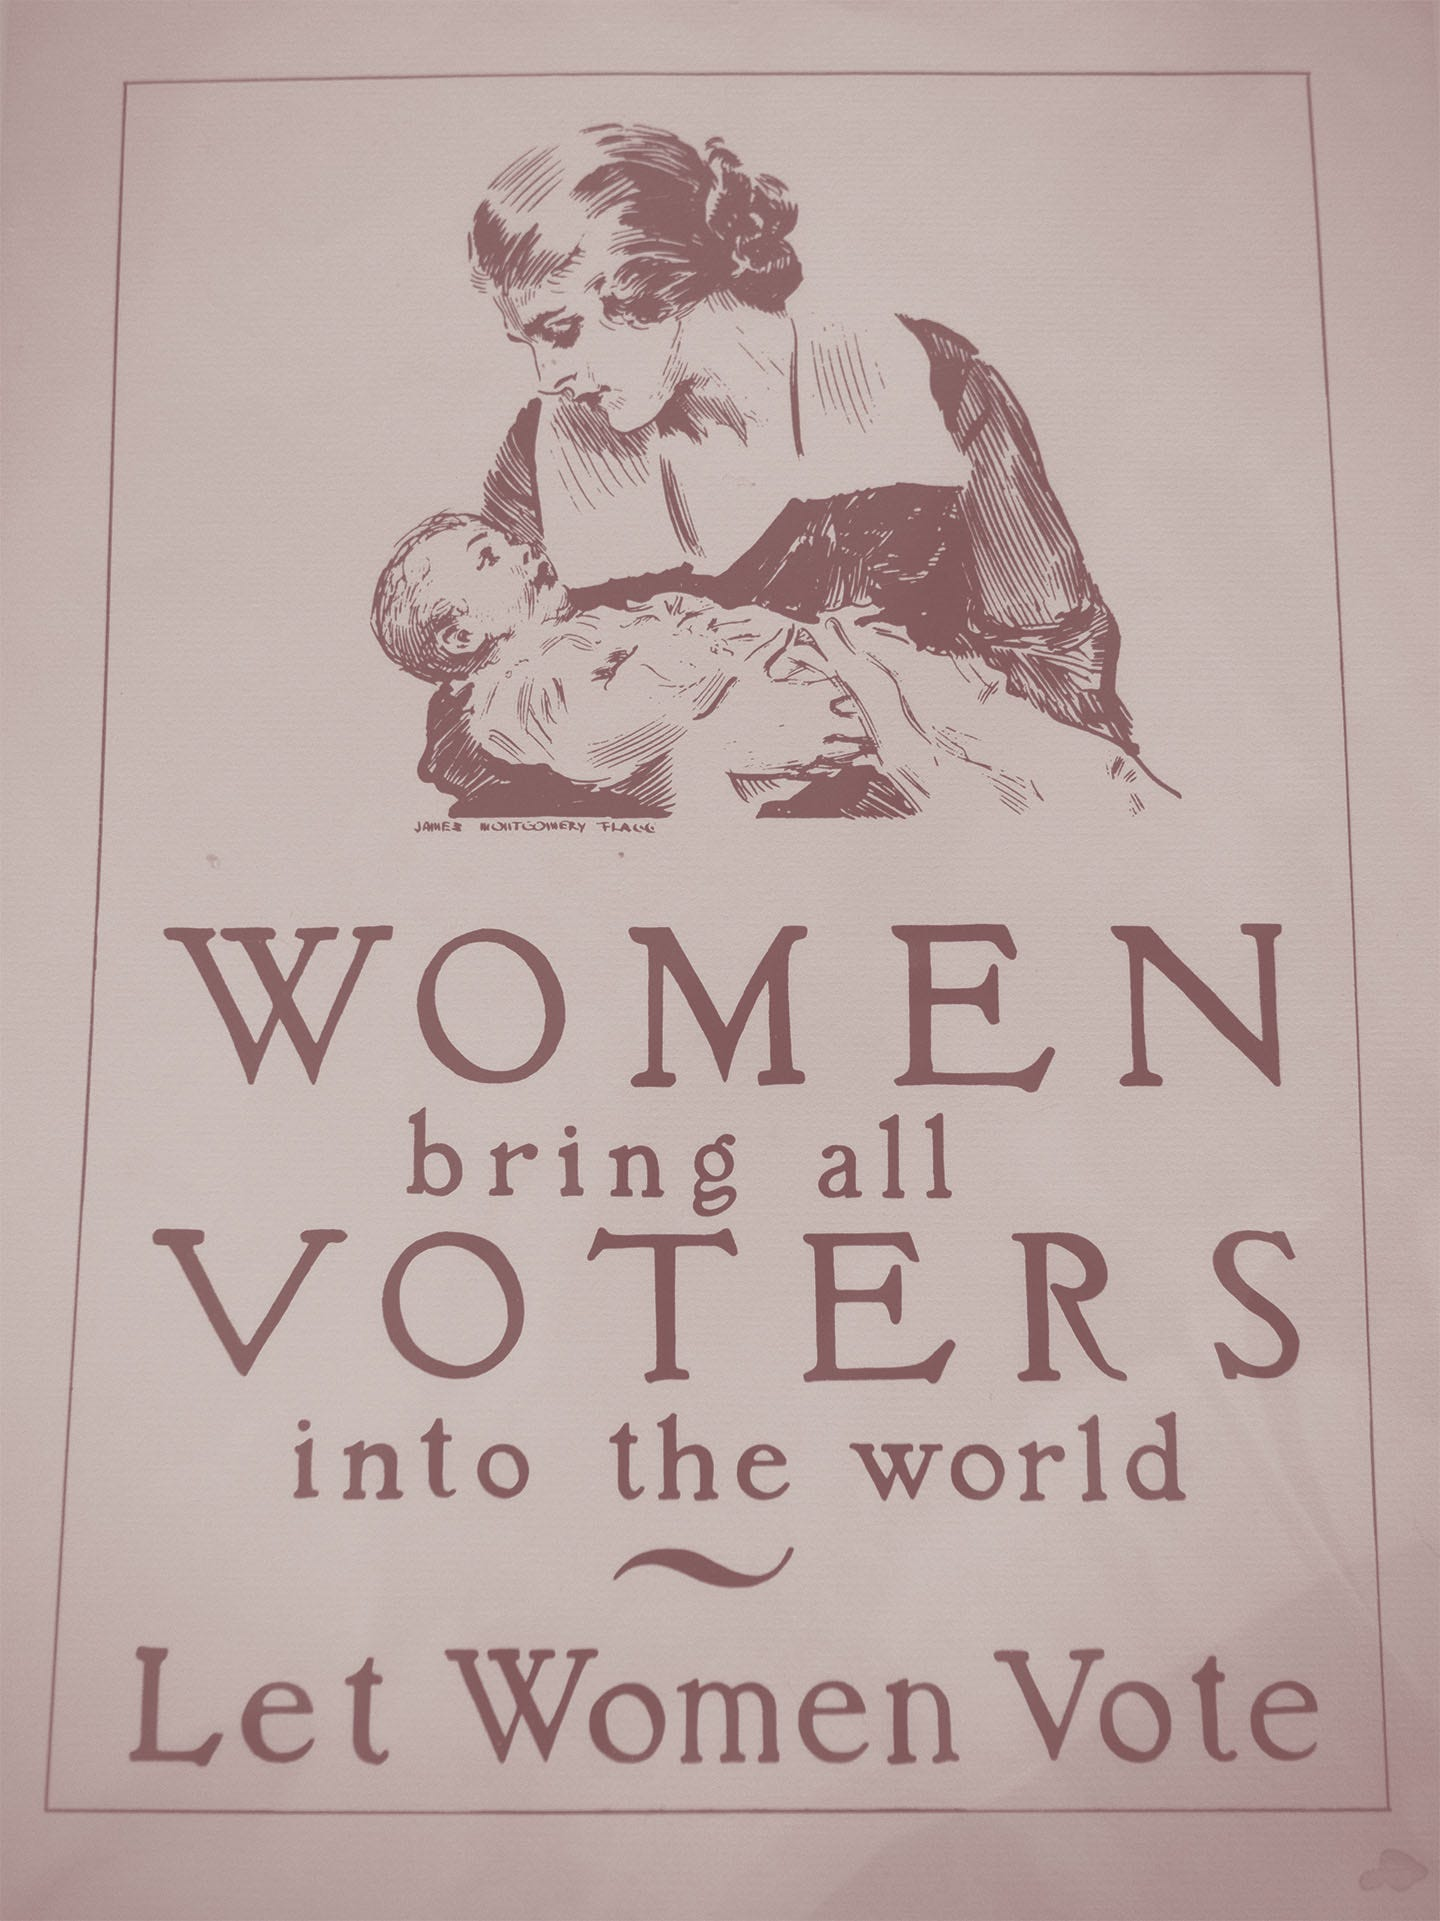 A poster from a collection of suffrage memorabilia.